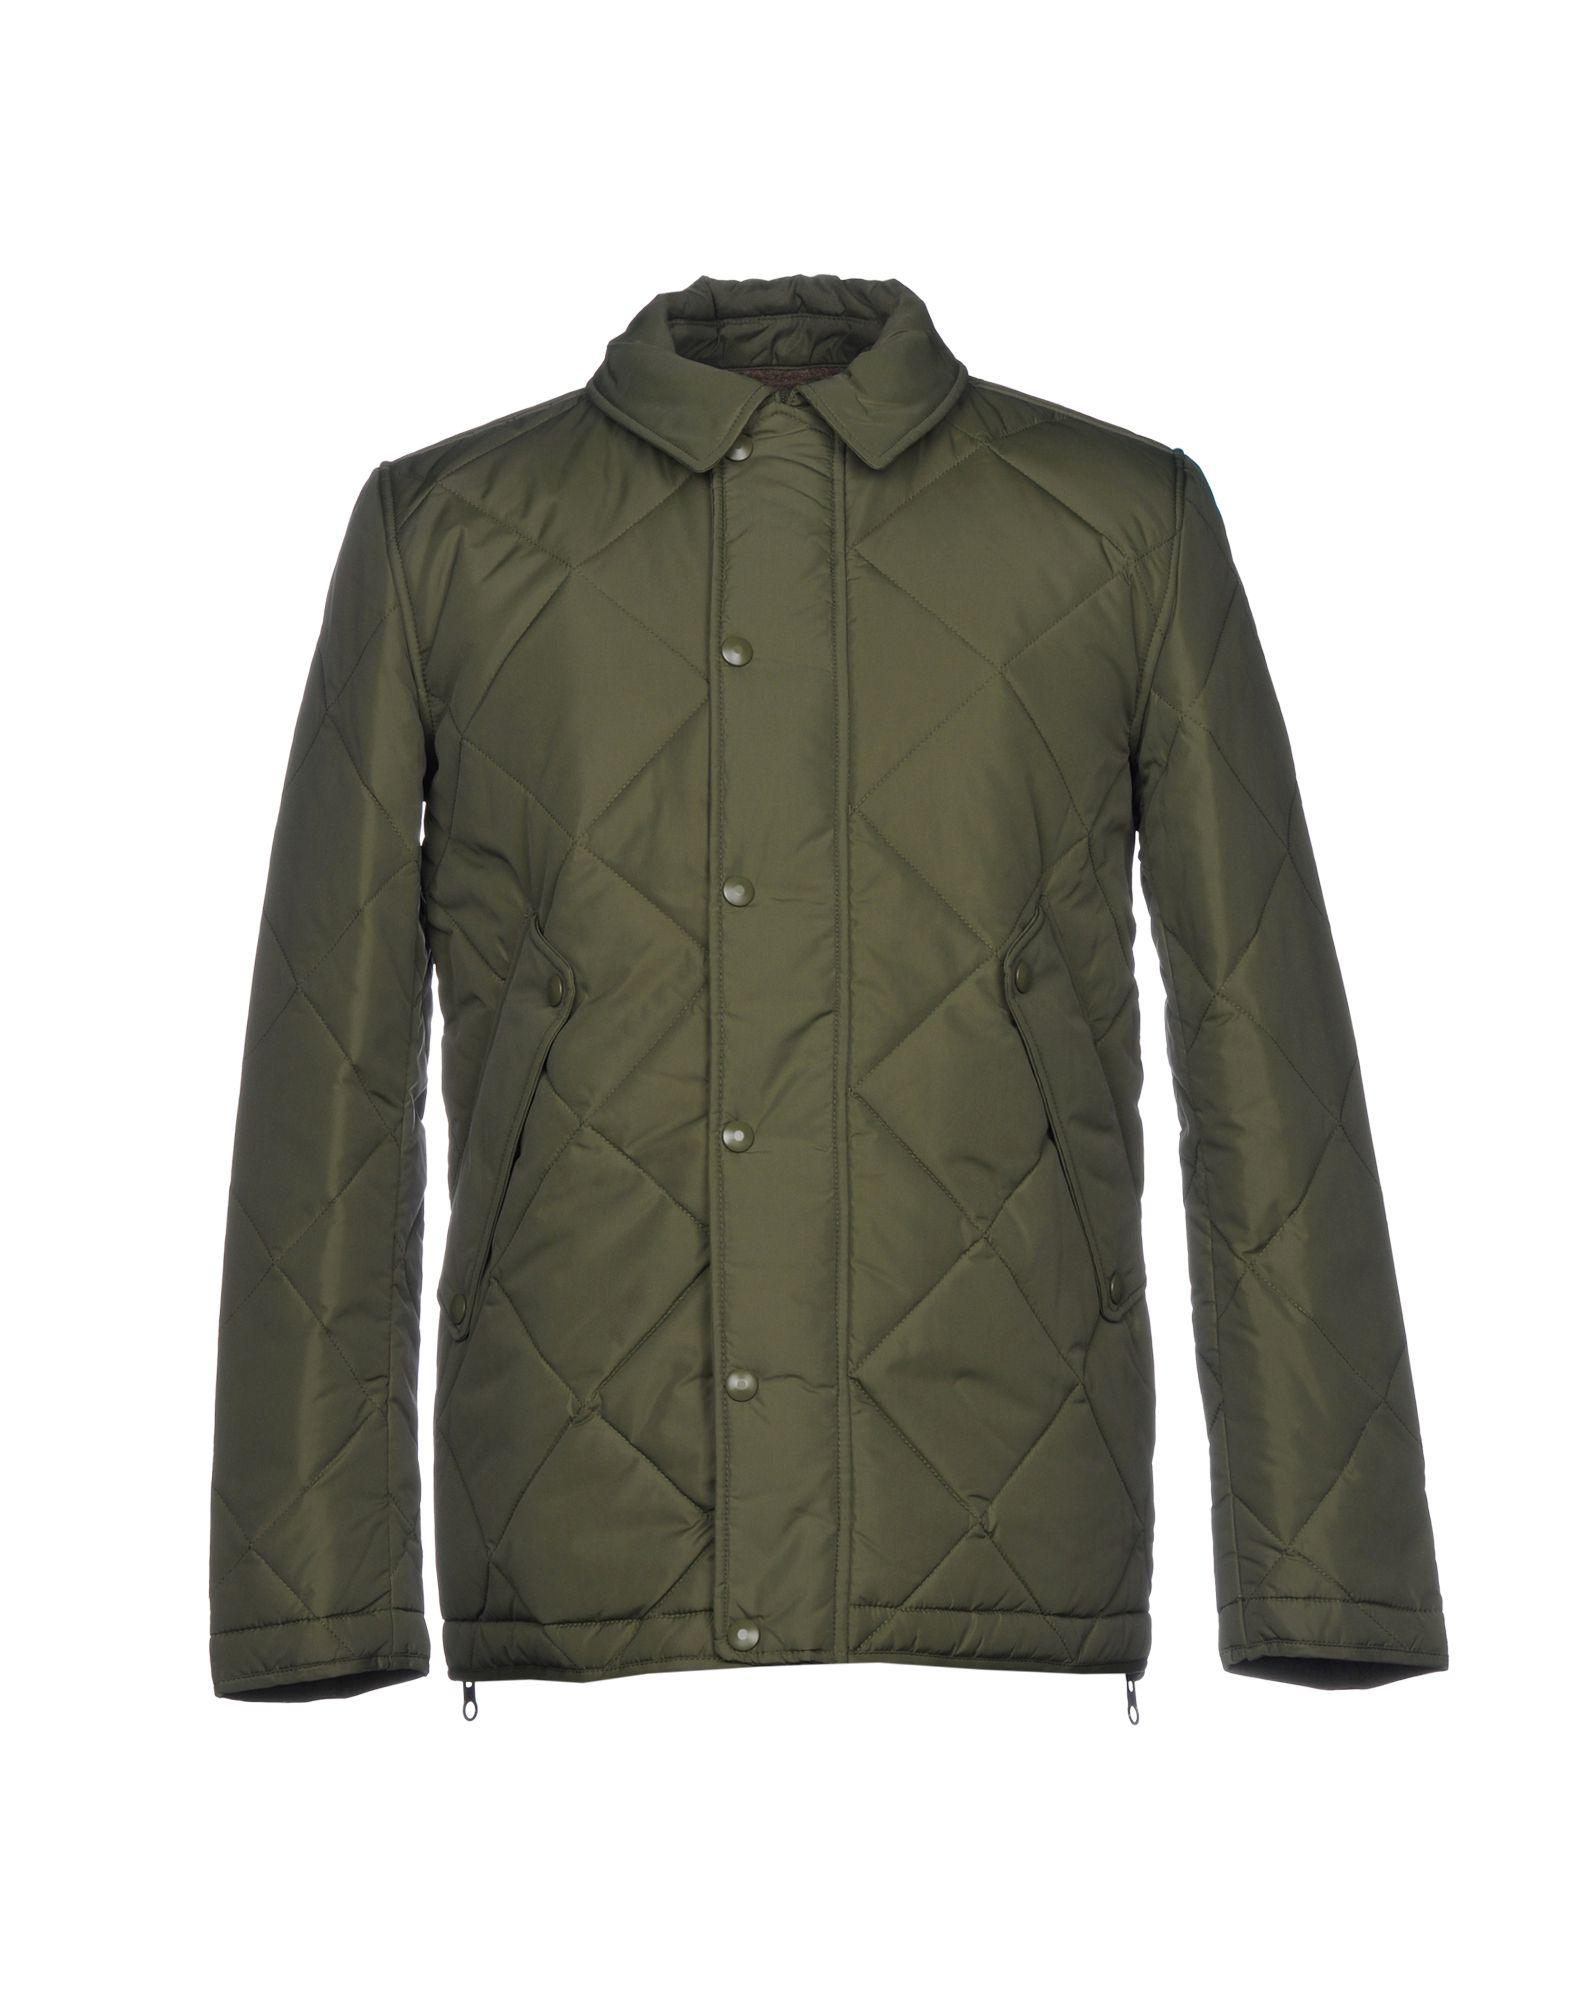 Sempach Jacket In Military Green